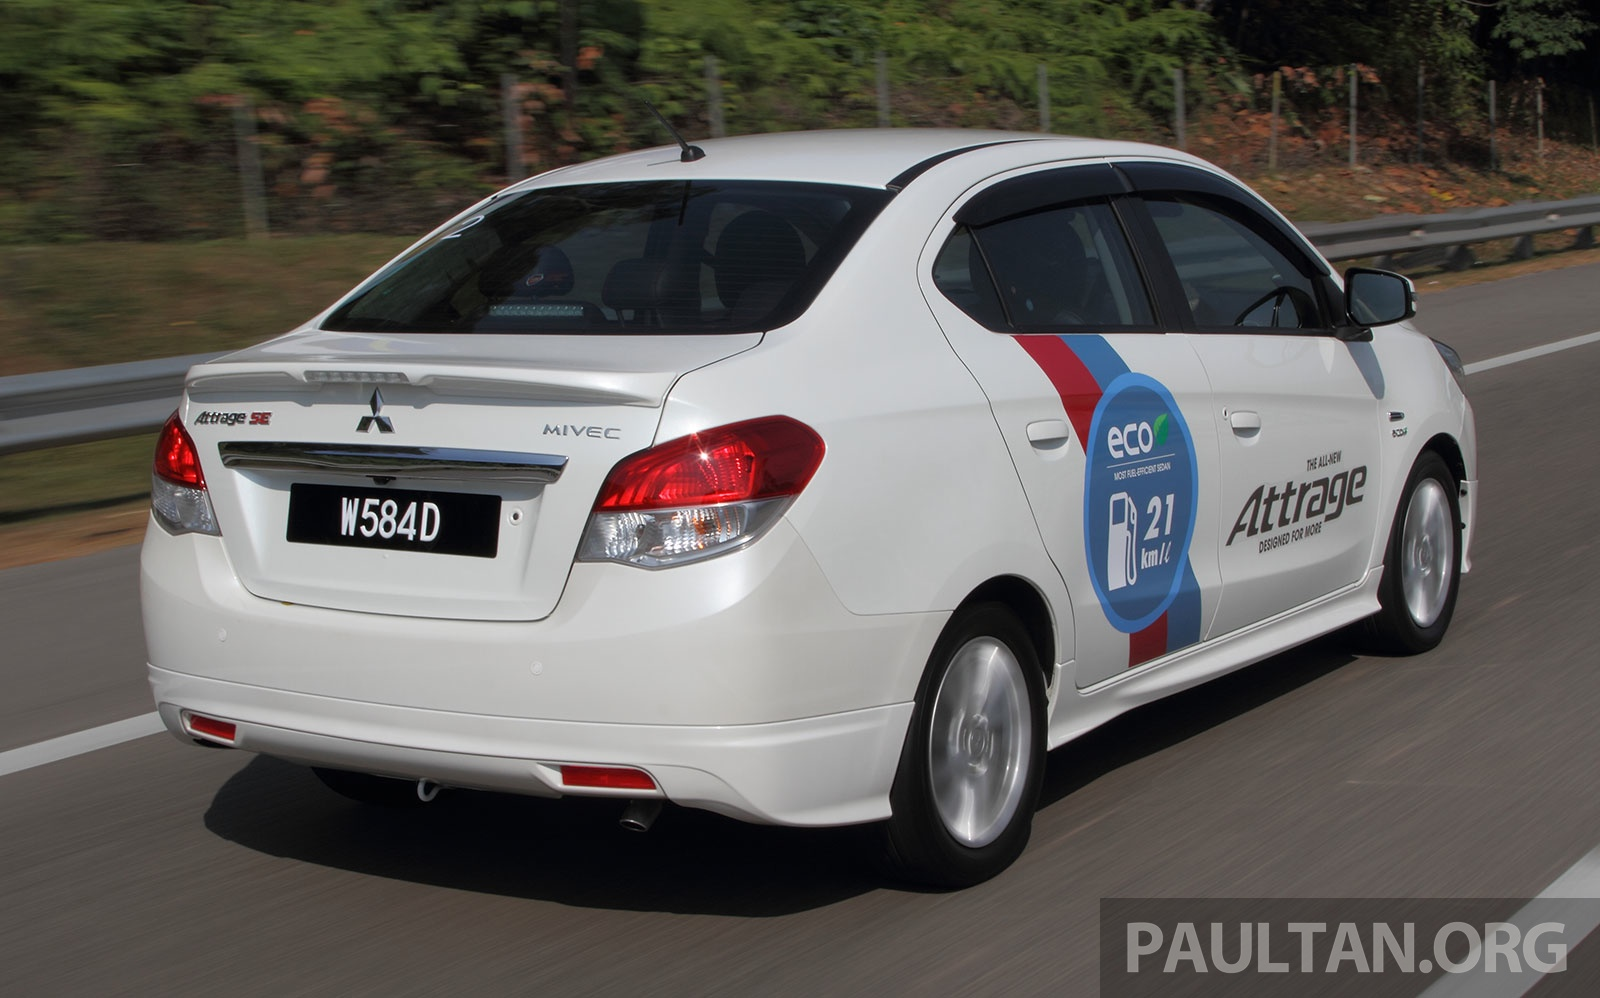 DRIVEN: Mitsubishi Attrage – 21 km/l claims put to test Image 229336